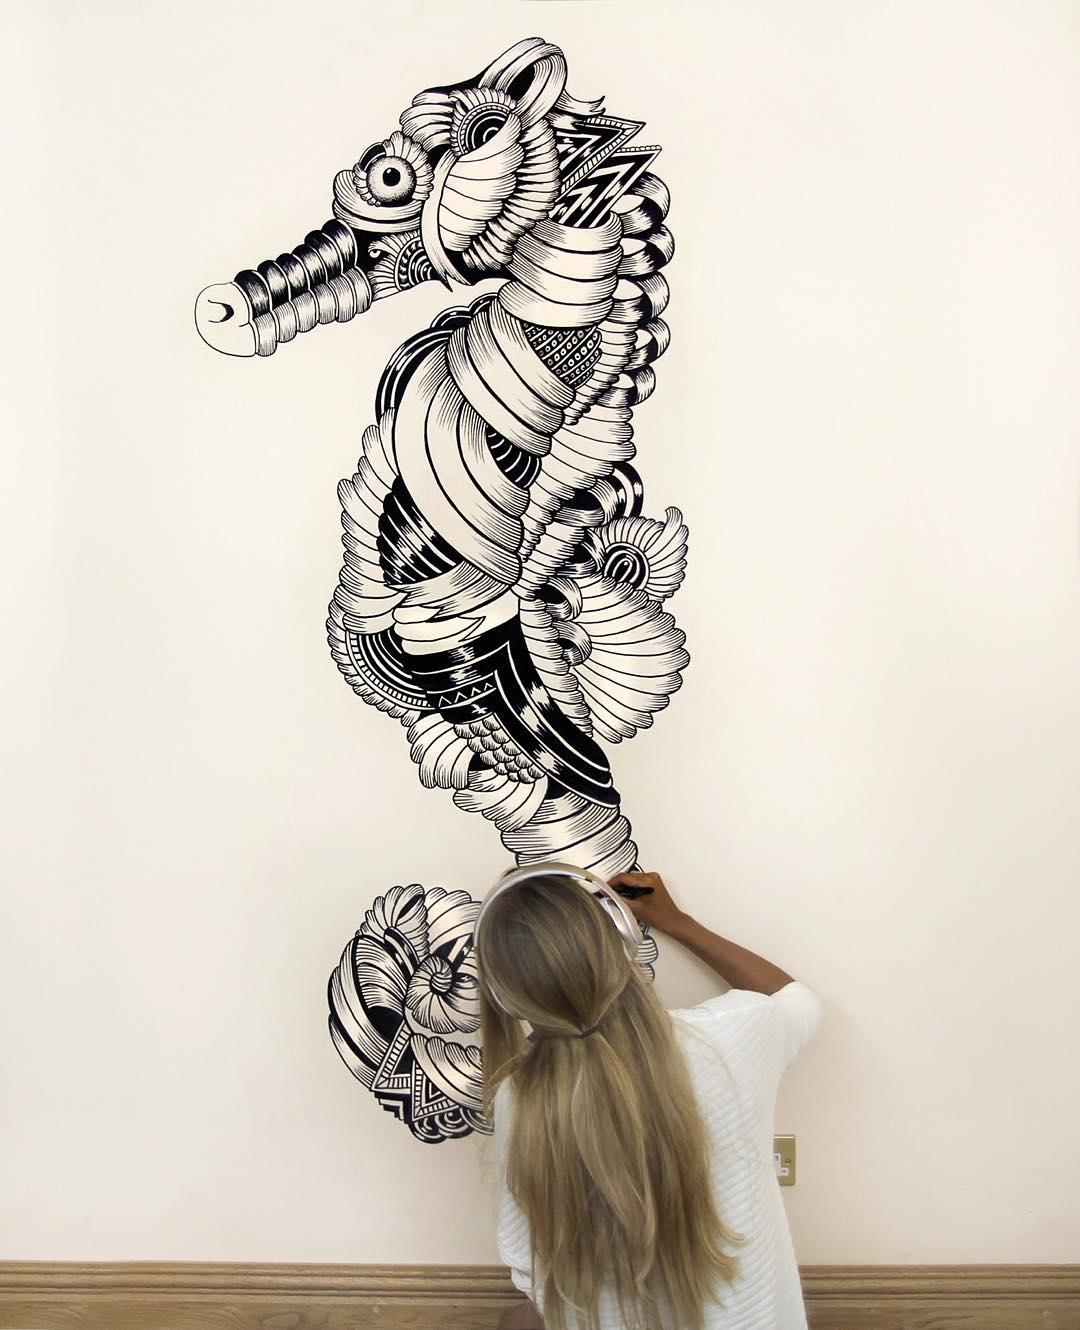 18-Seahorse-Faye-Halliday-Haathi-Detailed-Drawings-Representing-Complex-Animal-www-designstack-co